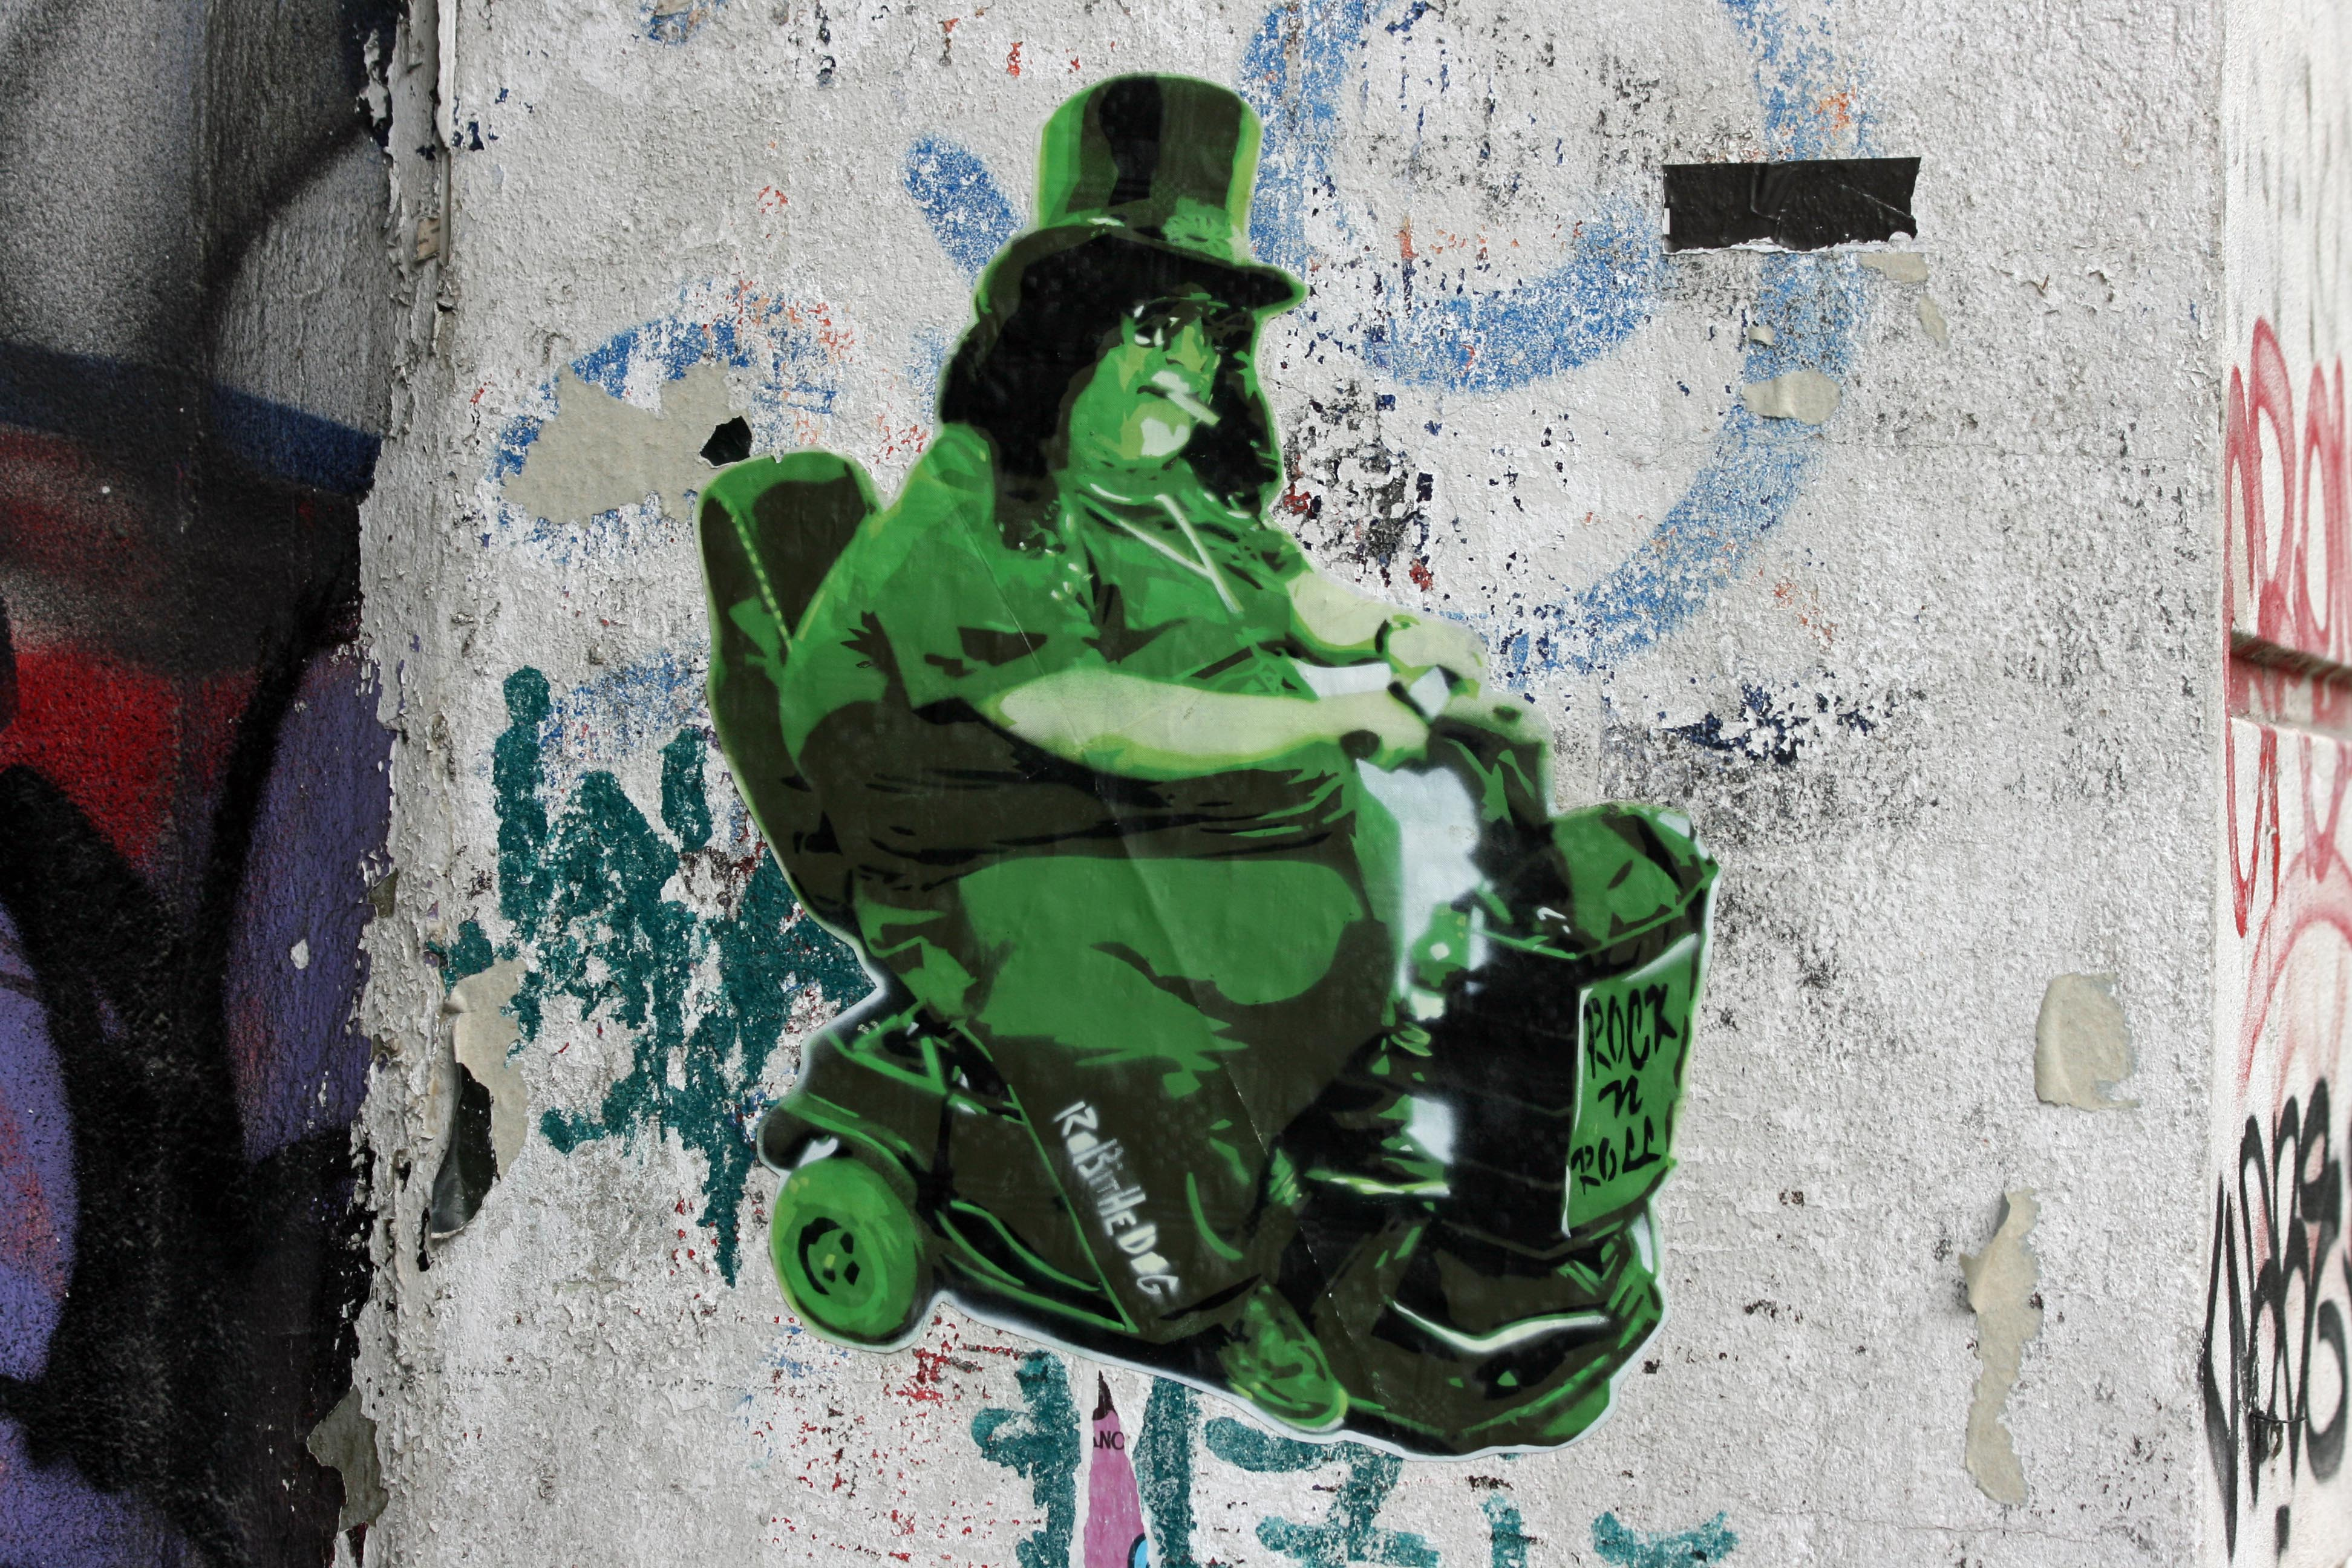 Rock 'n' Roll Mobility Scooter: Street Art by Robi The Dog in Berlin